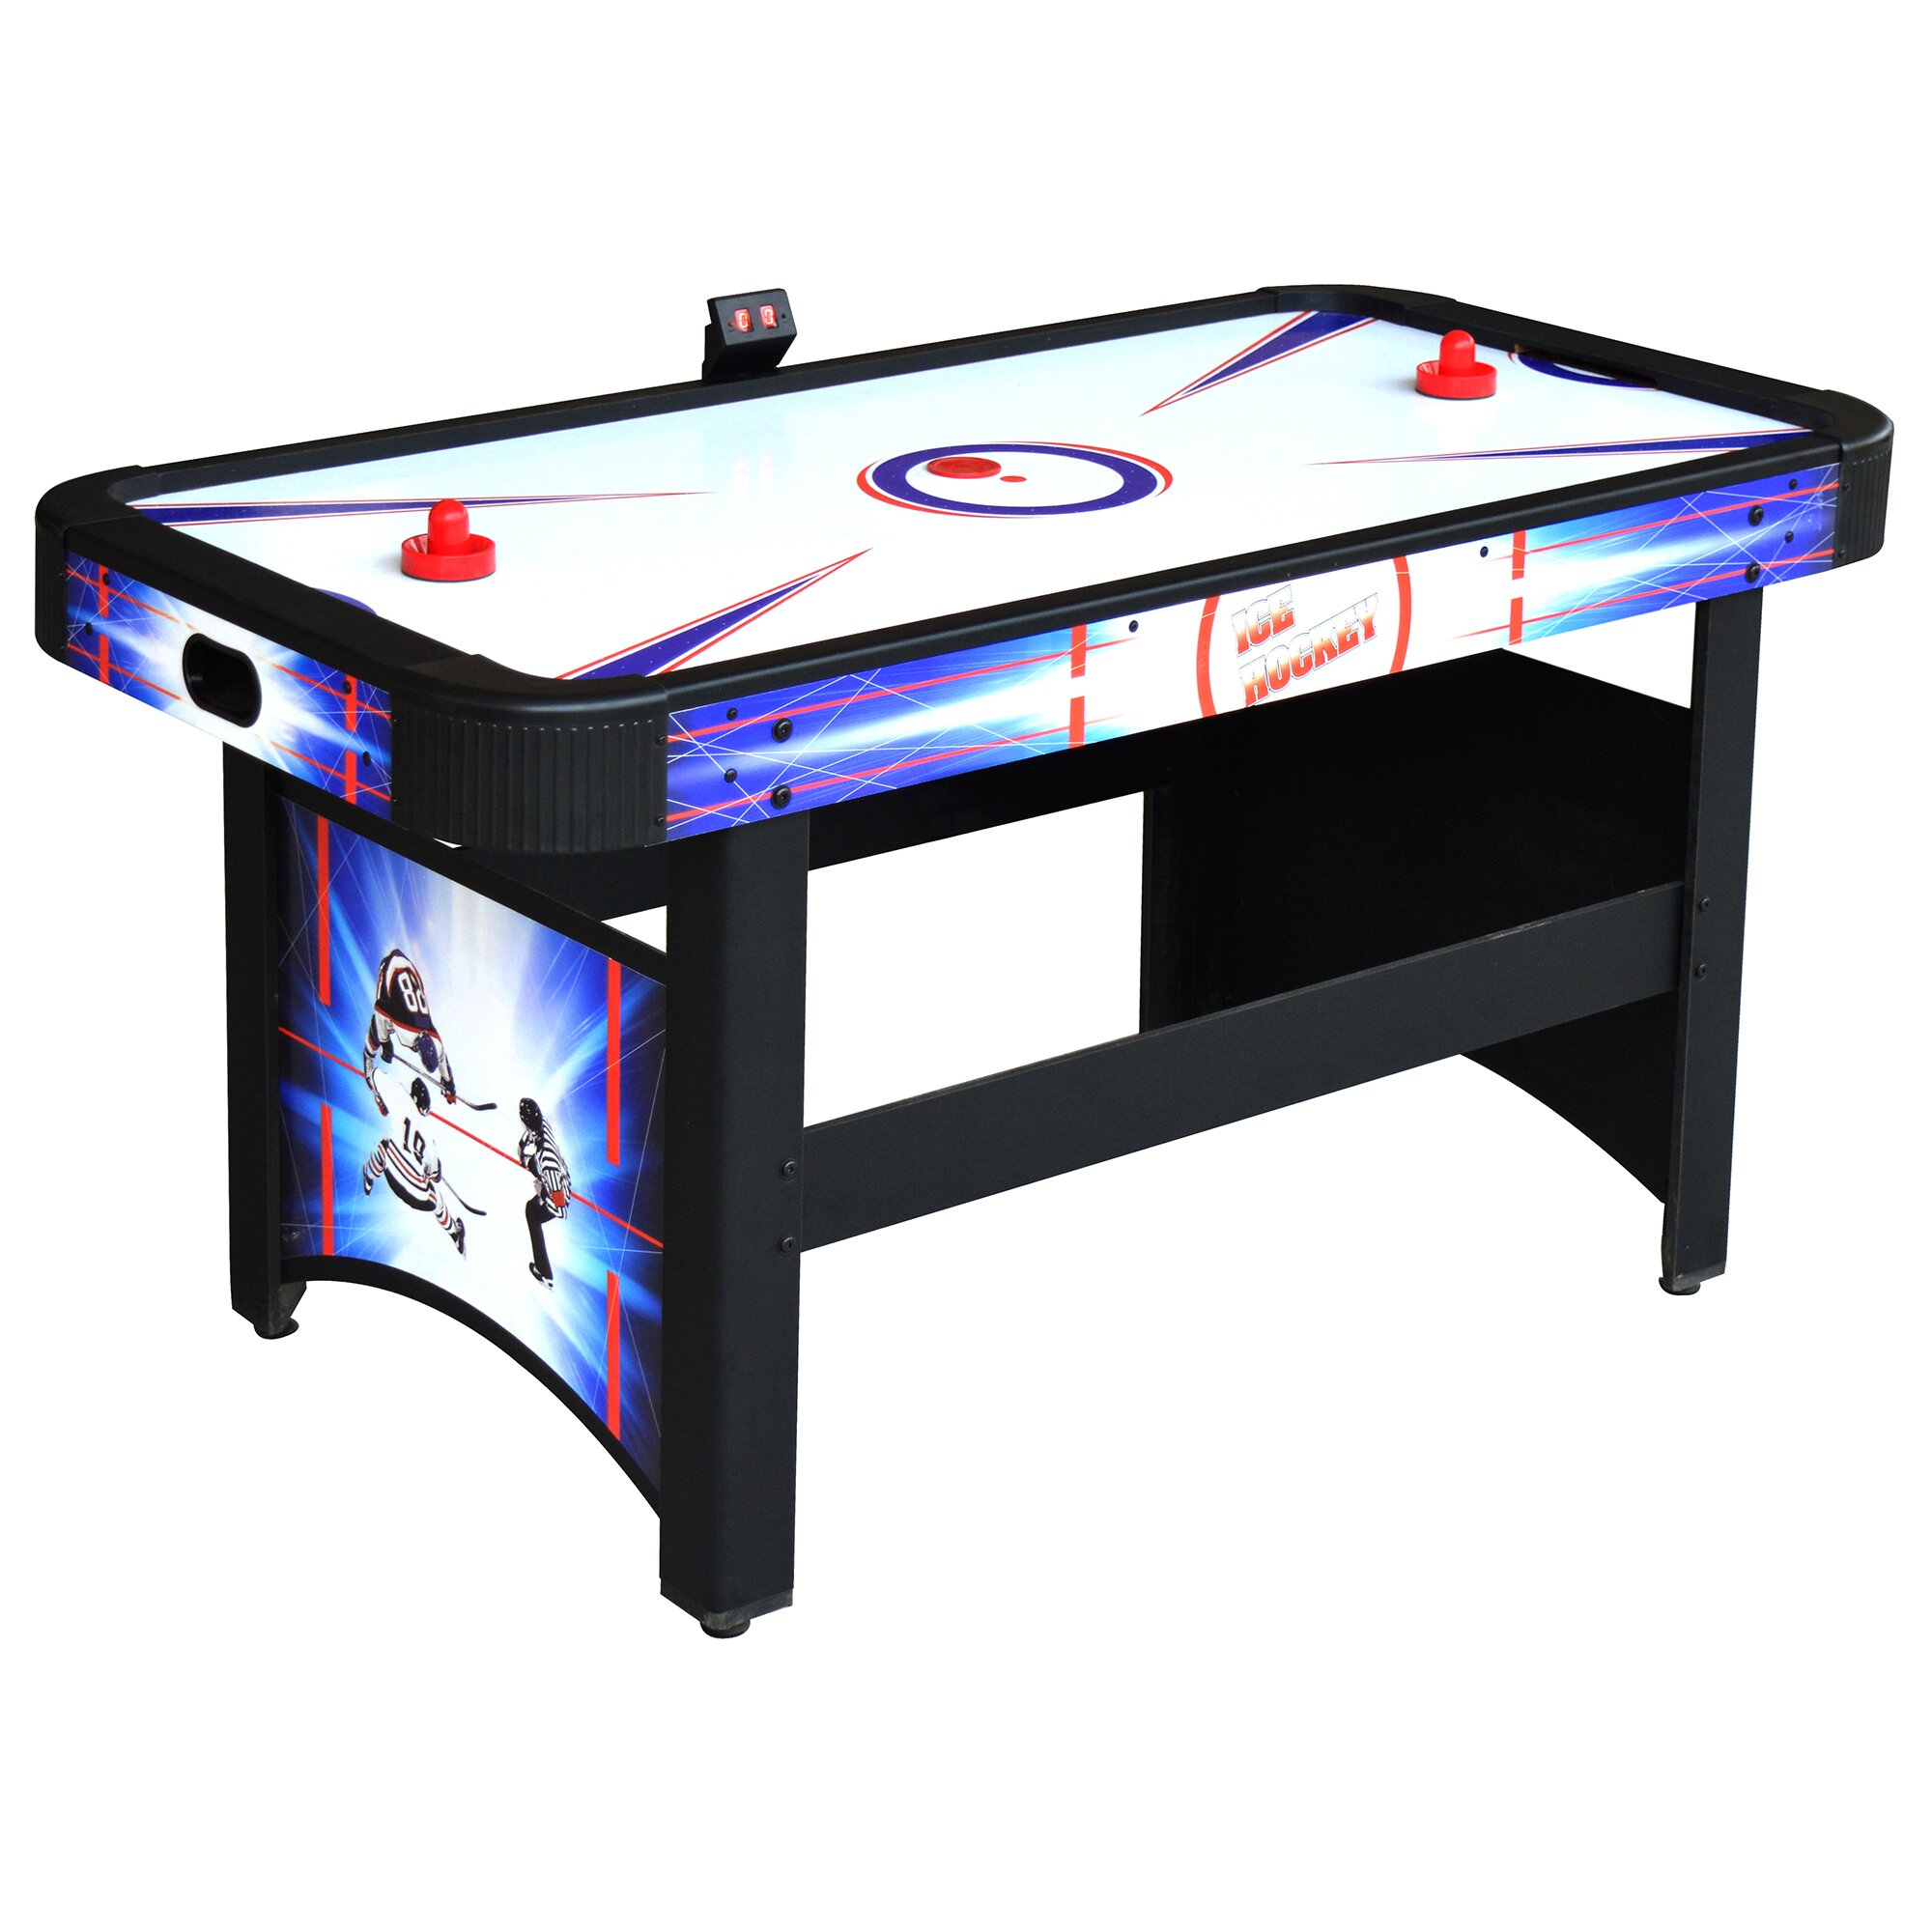 Hathaway Games Patriot 5' Air Hockey Table & Reviews  Wayfair. Awesome Office Desk. Altra Chadwick Collection Corner Desk. Storage Drawers On Wheels. Exercise At Work Desk. Discount End Tables. 36 Desk. Ashley Furniture Side Tables. Gray Computer Desk